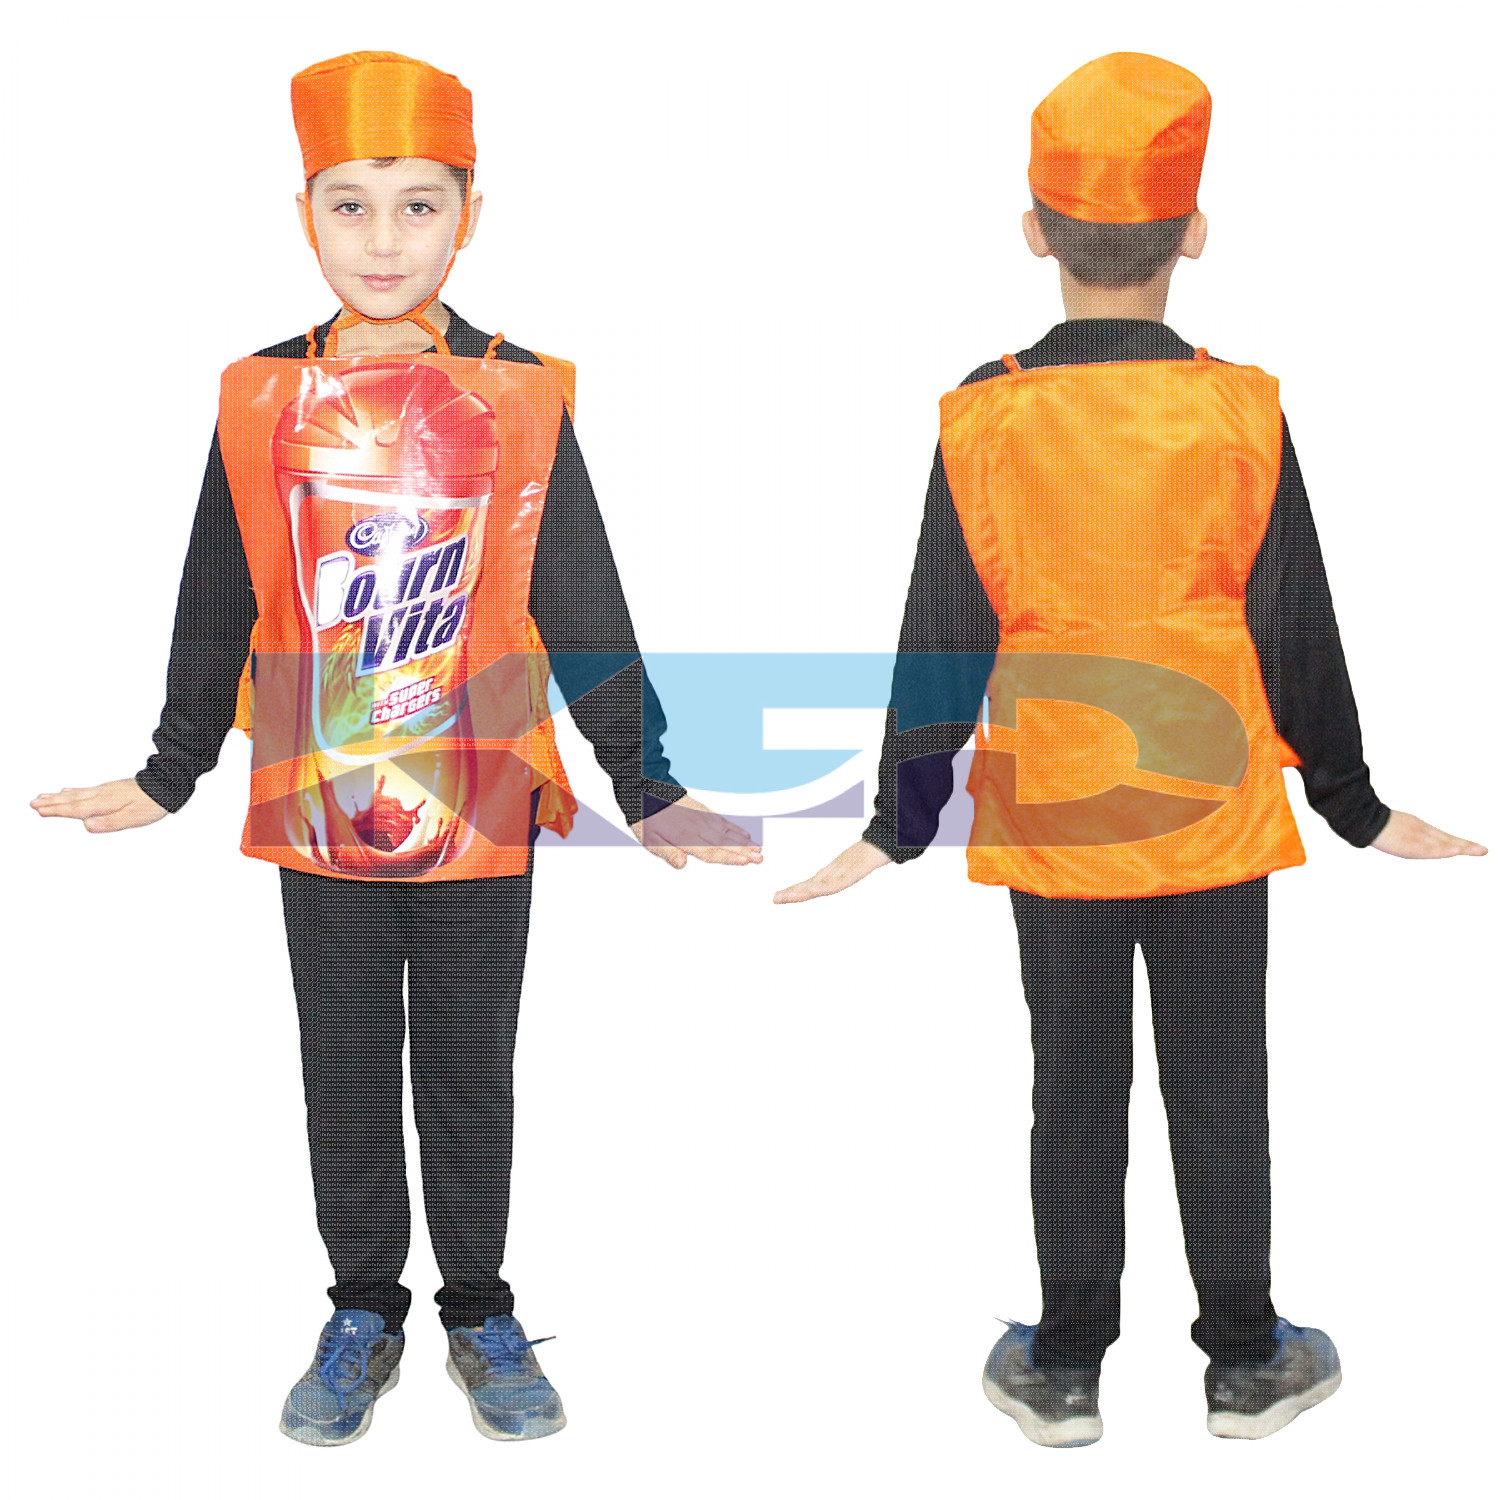 Bournvita fancy dress for kids,Object Costume for School Annual function/Theme Party/Competition/Stage Shows Dress